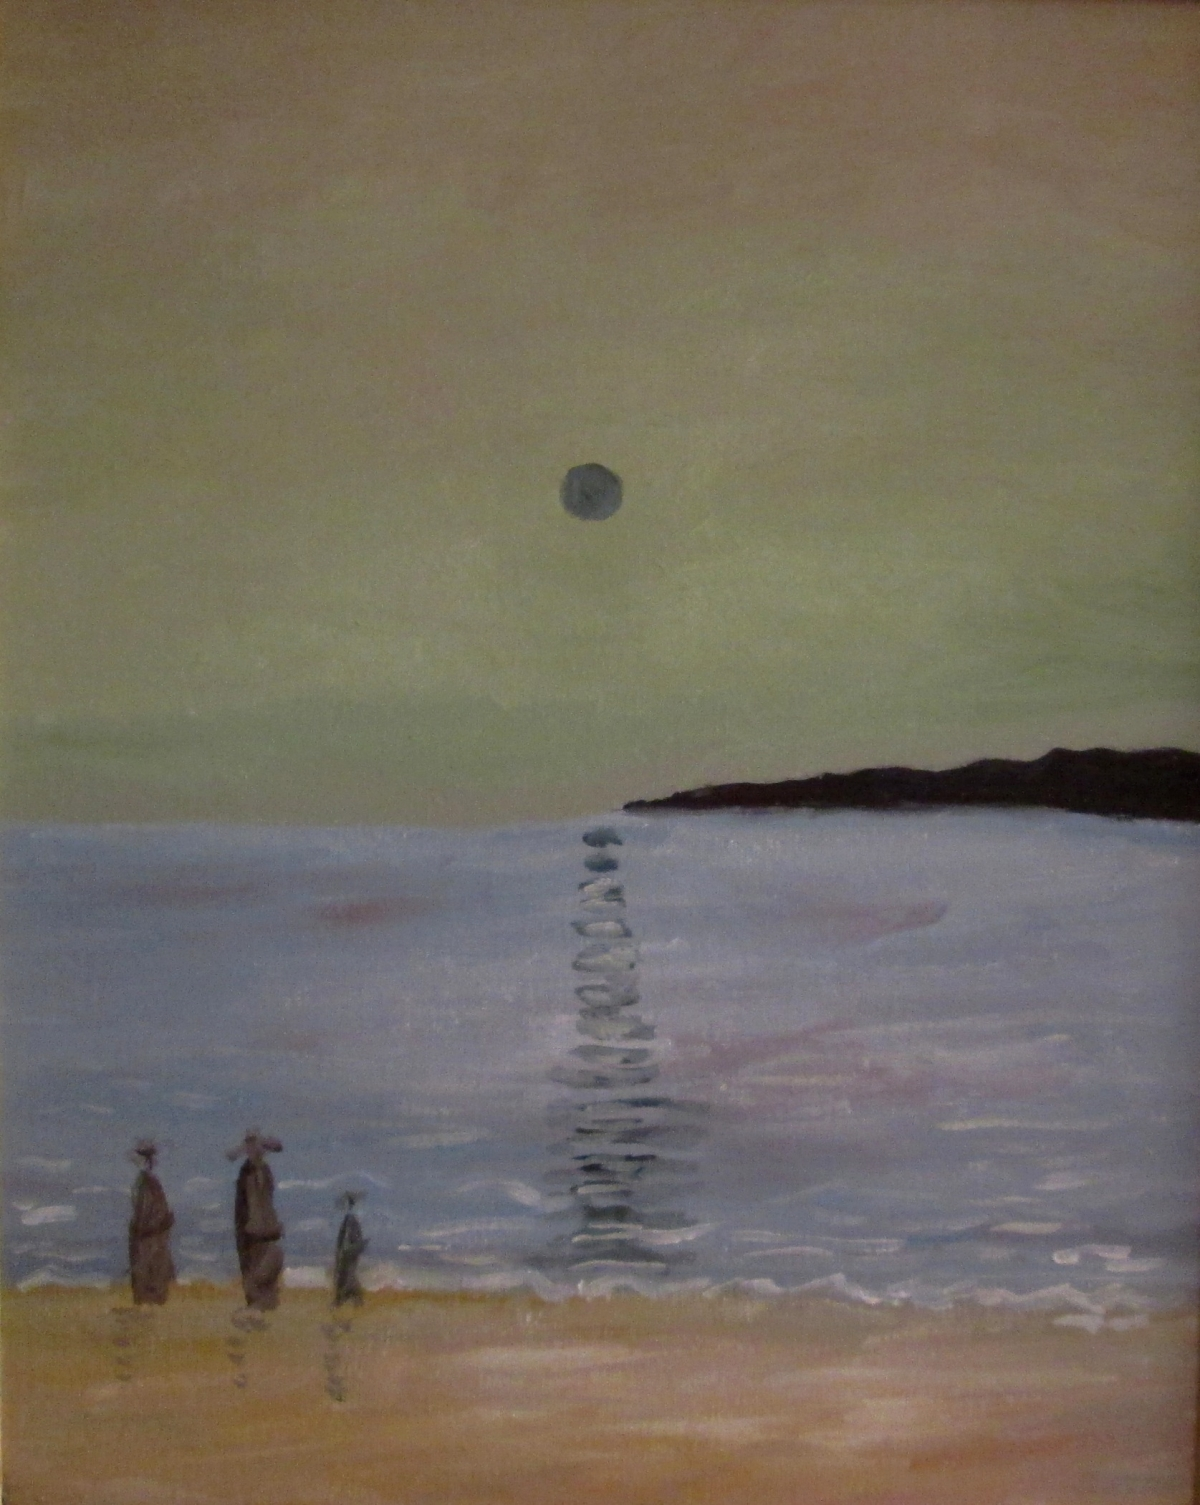 Figures walking on a beach.